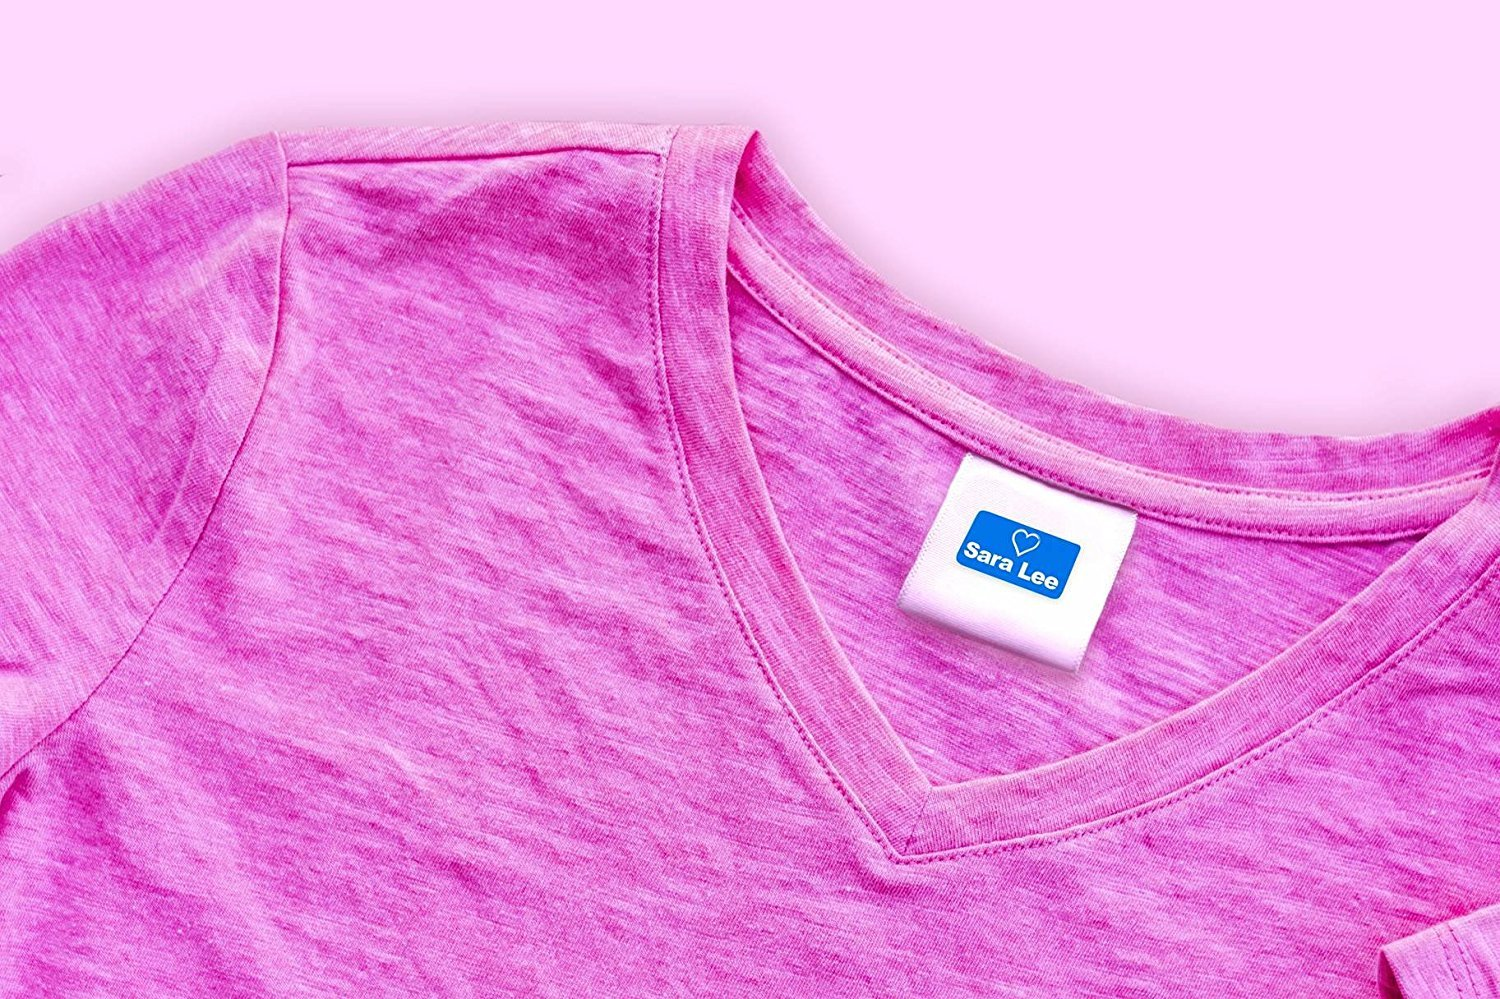 Custom Personalized Clothing Labels Self Adhesive - Machine Washable Heavy Duty PVC Customize Name Color /& Icon 90 Labels - Waterproof